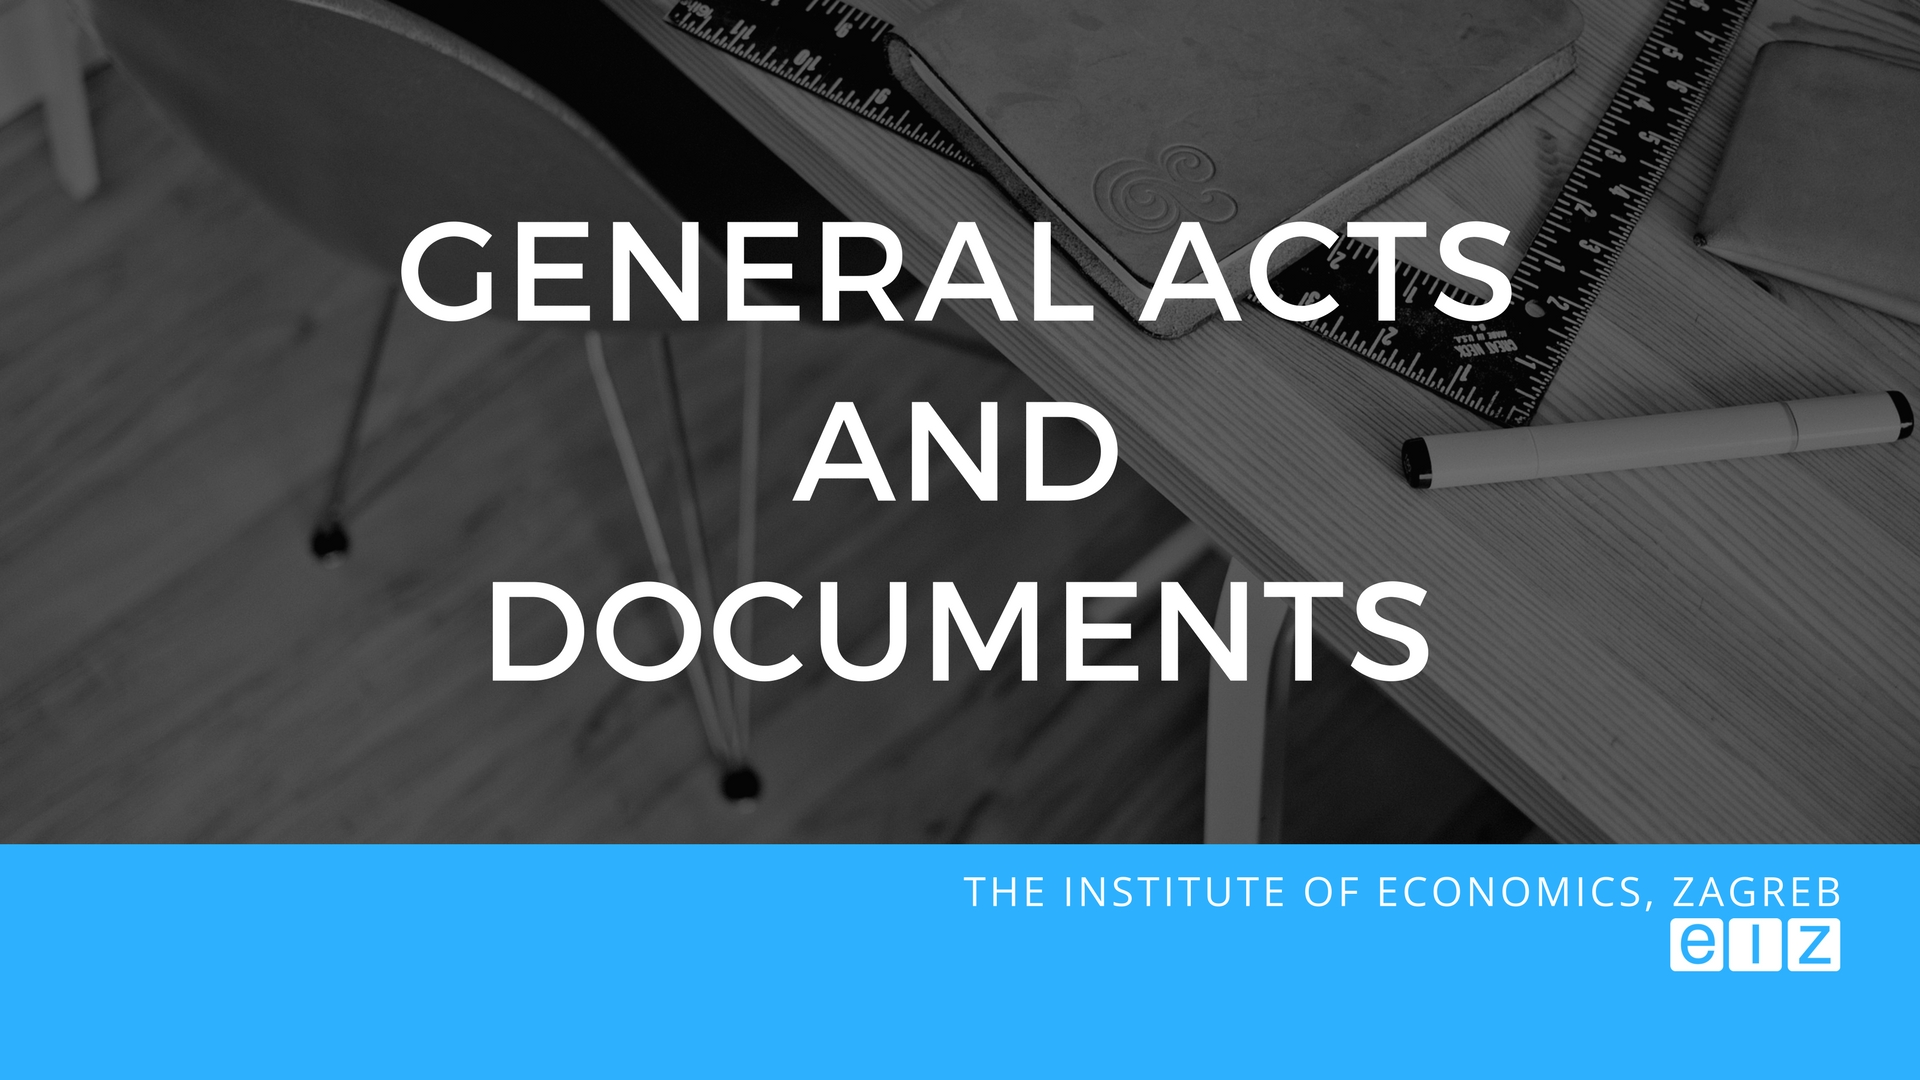 General acts and documents